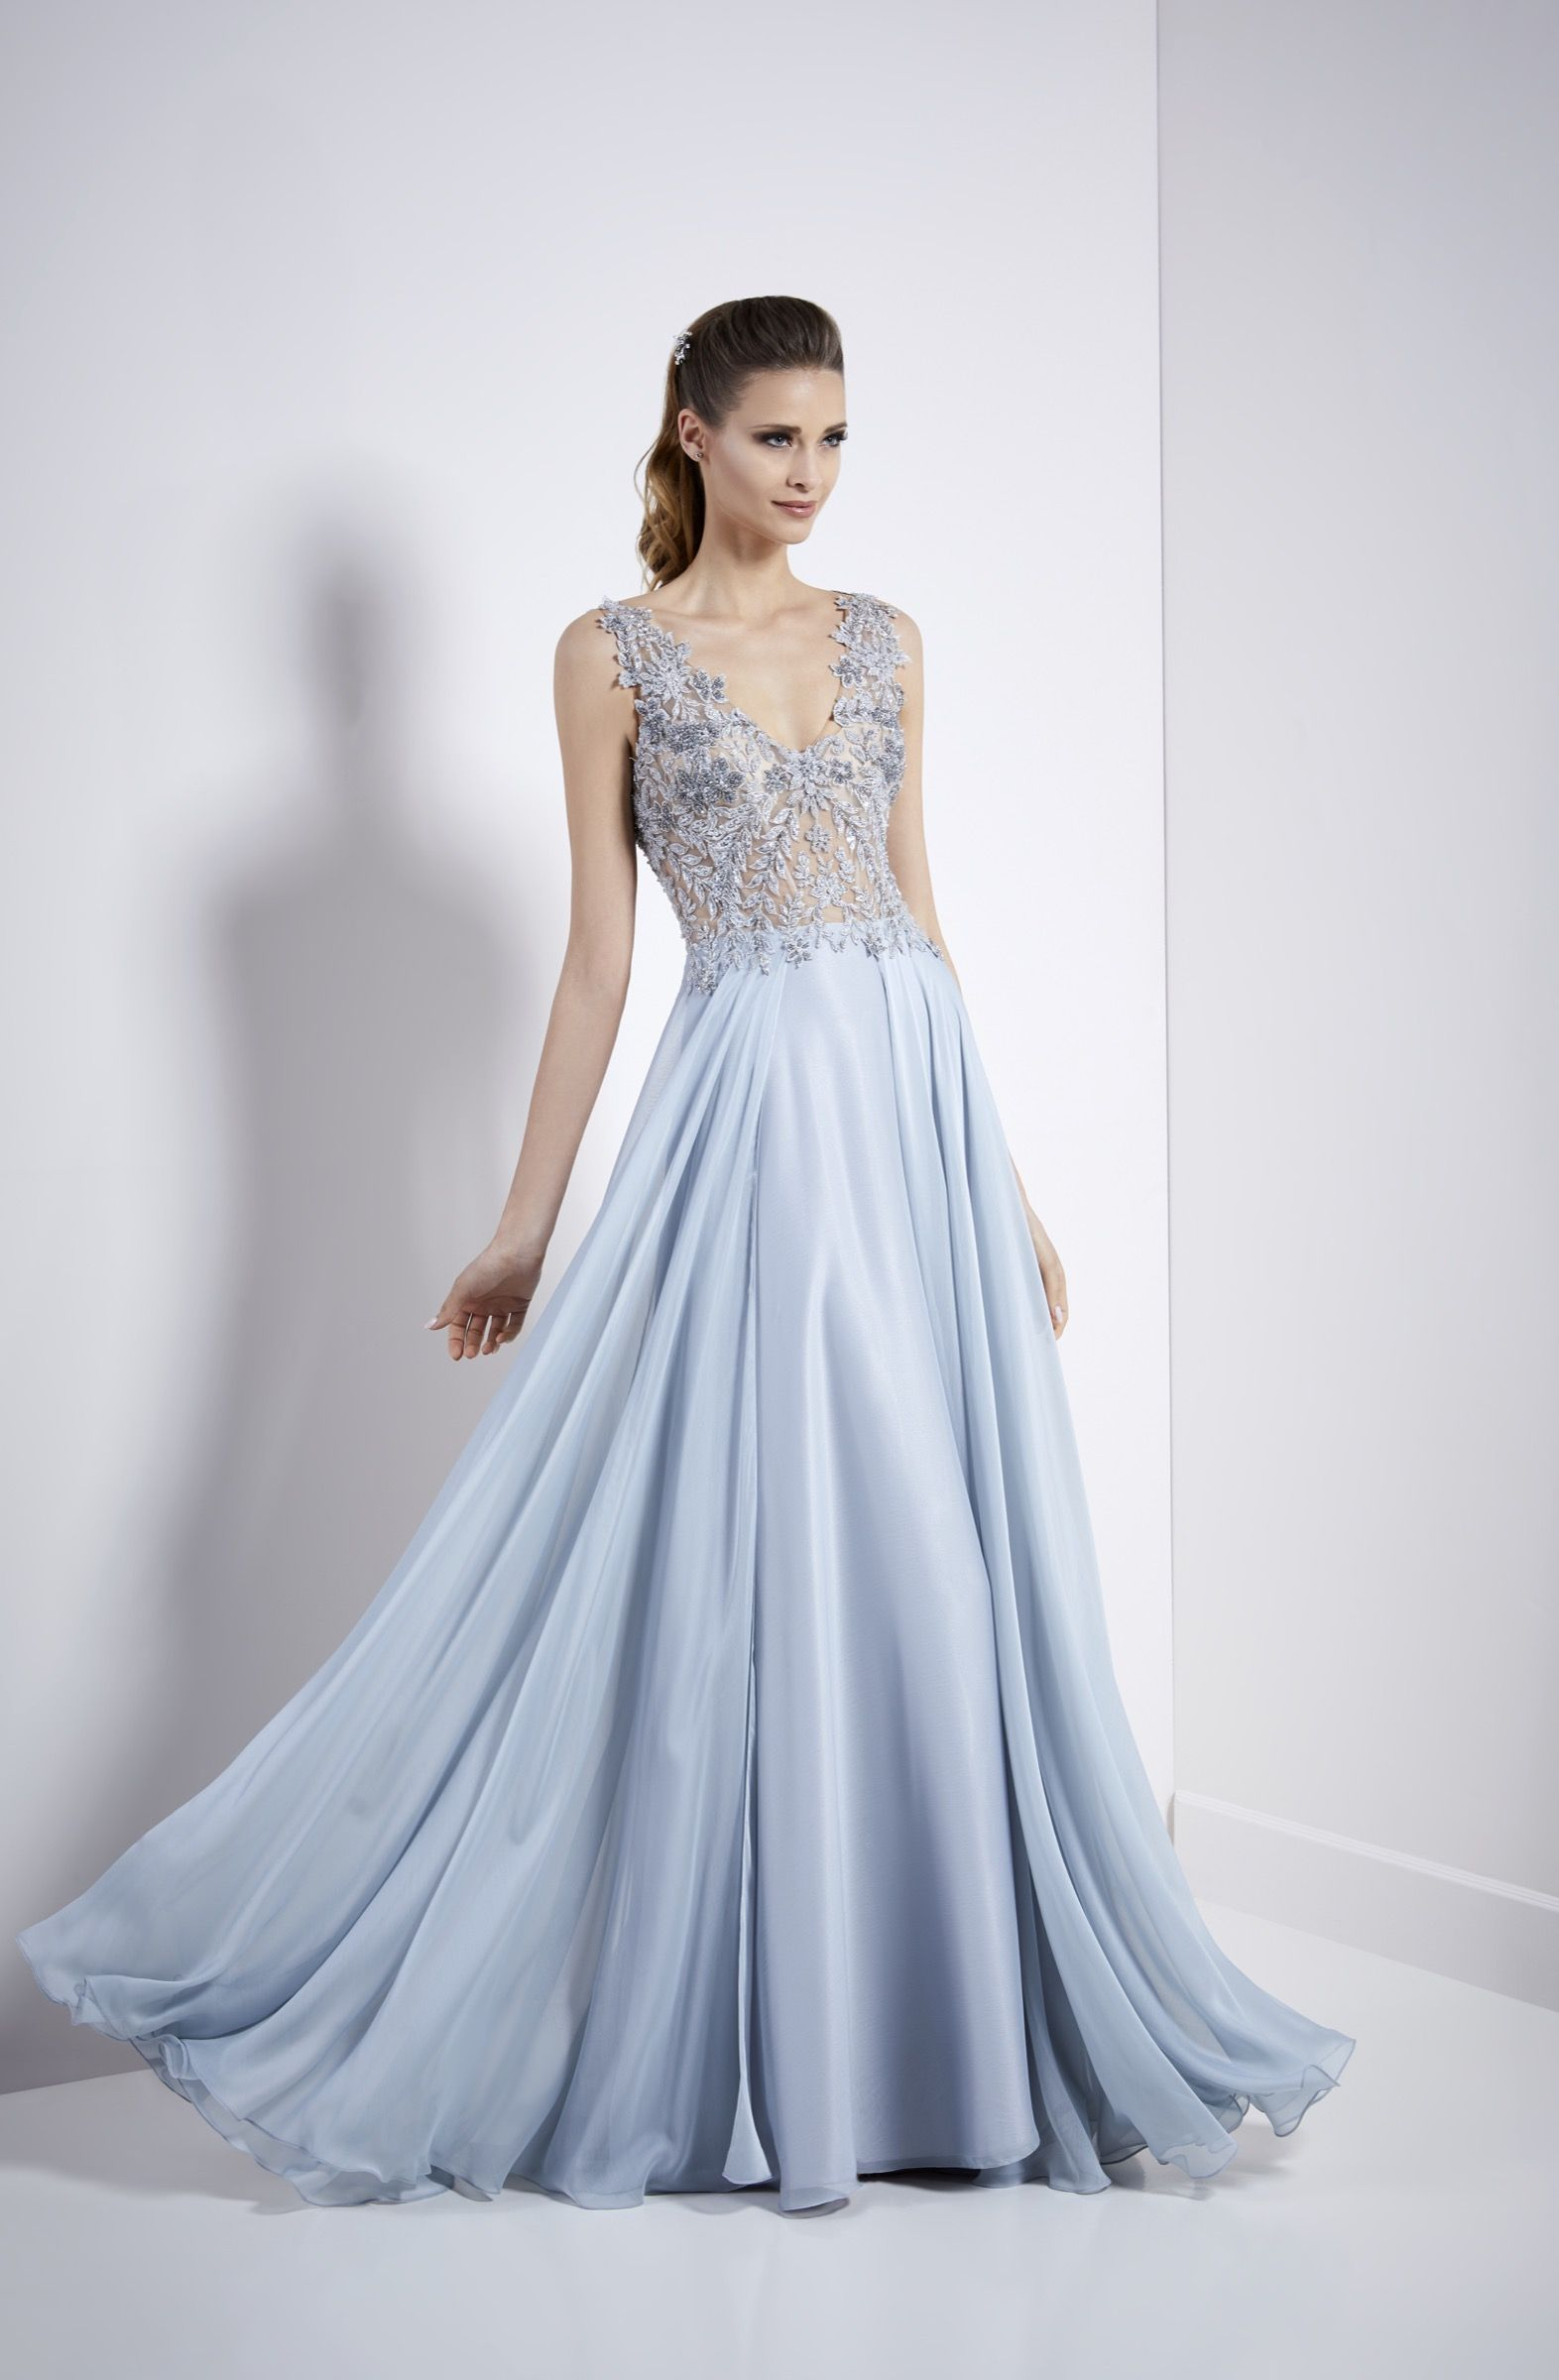 Nicole Cocktail & Evening 2018 Collection Dress